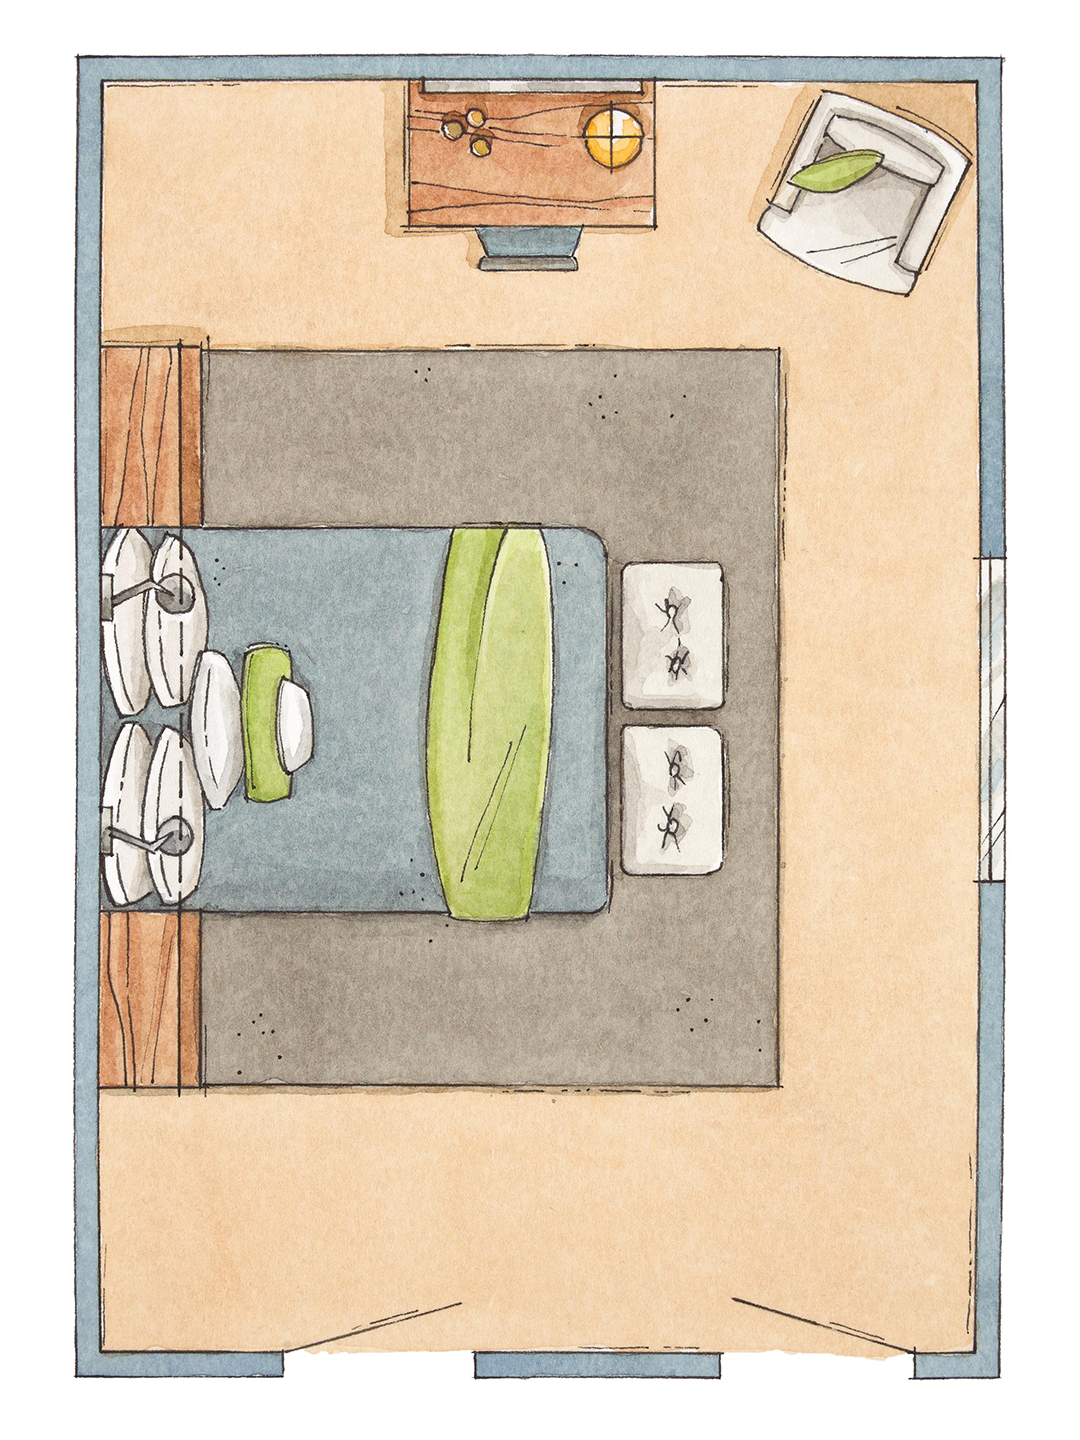 bedroom furniture arrangement window wall illustration